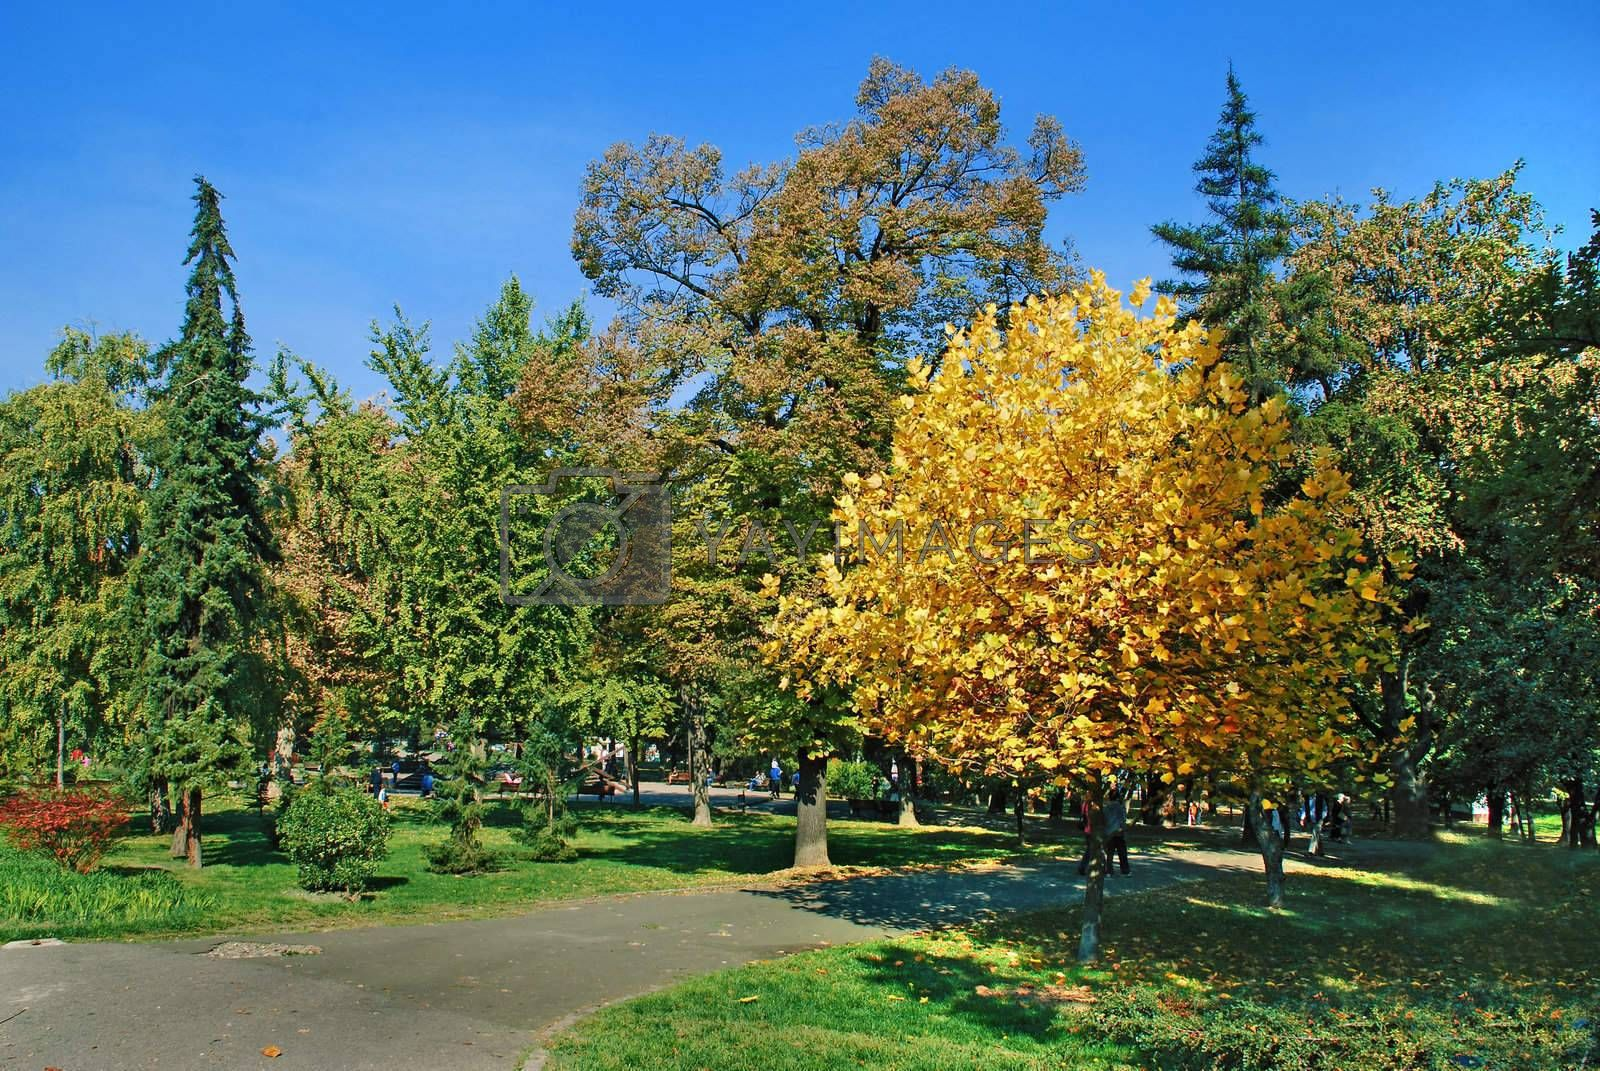 yellow and green trees in par over blue sky